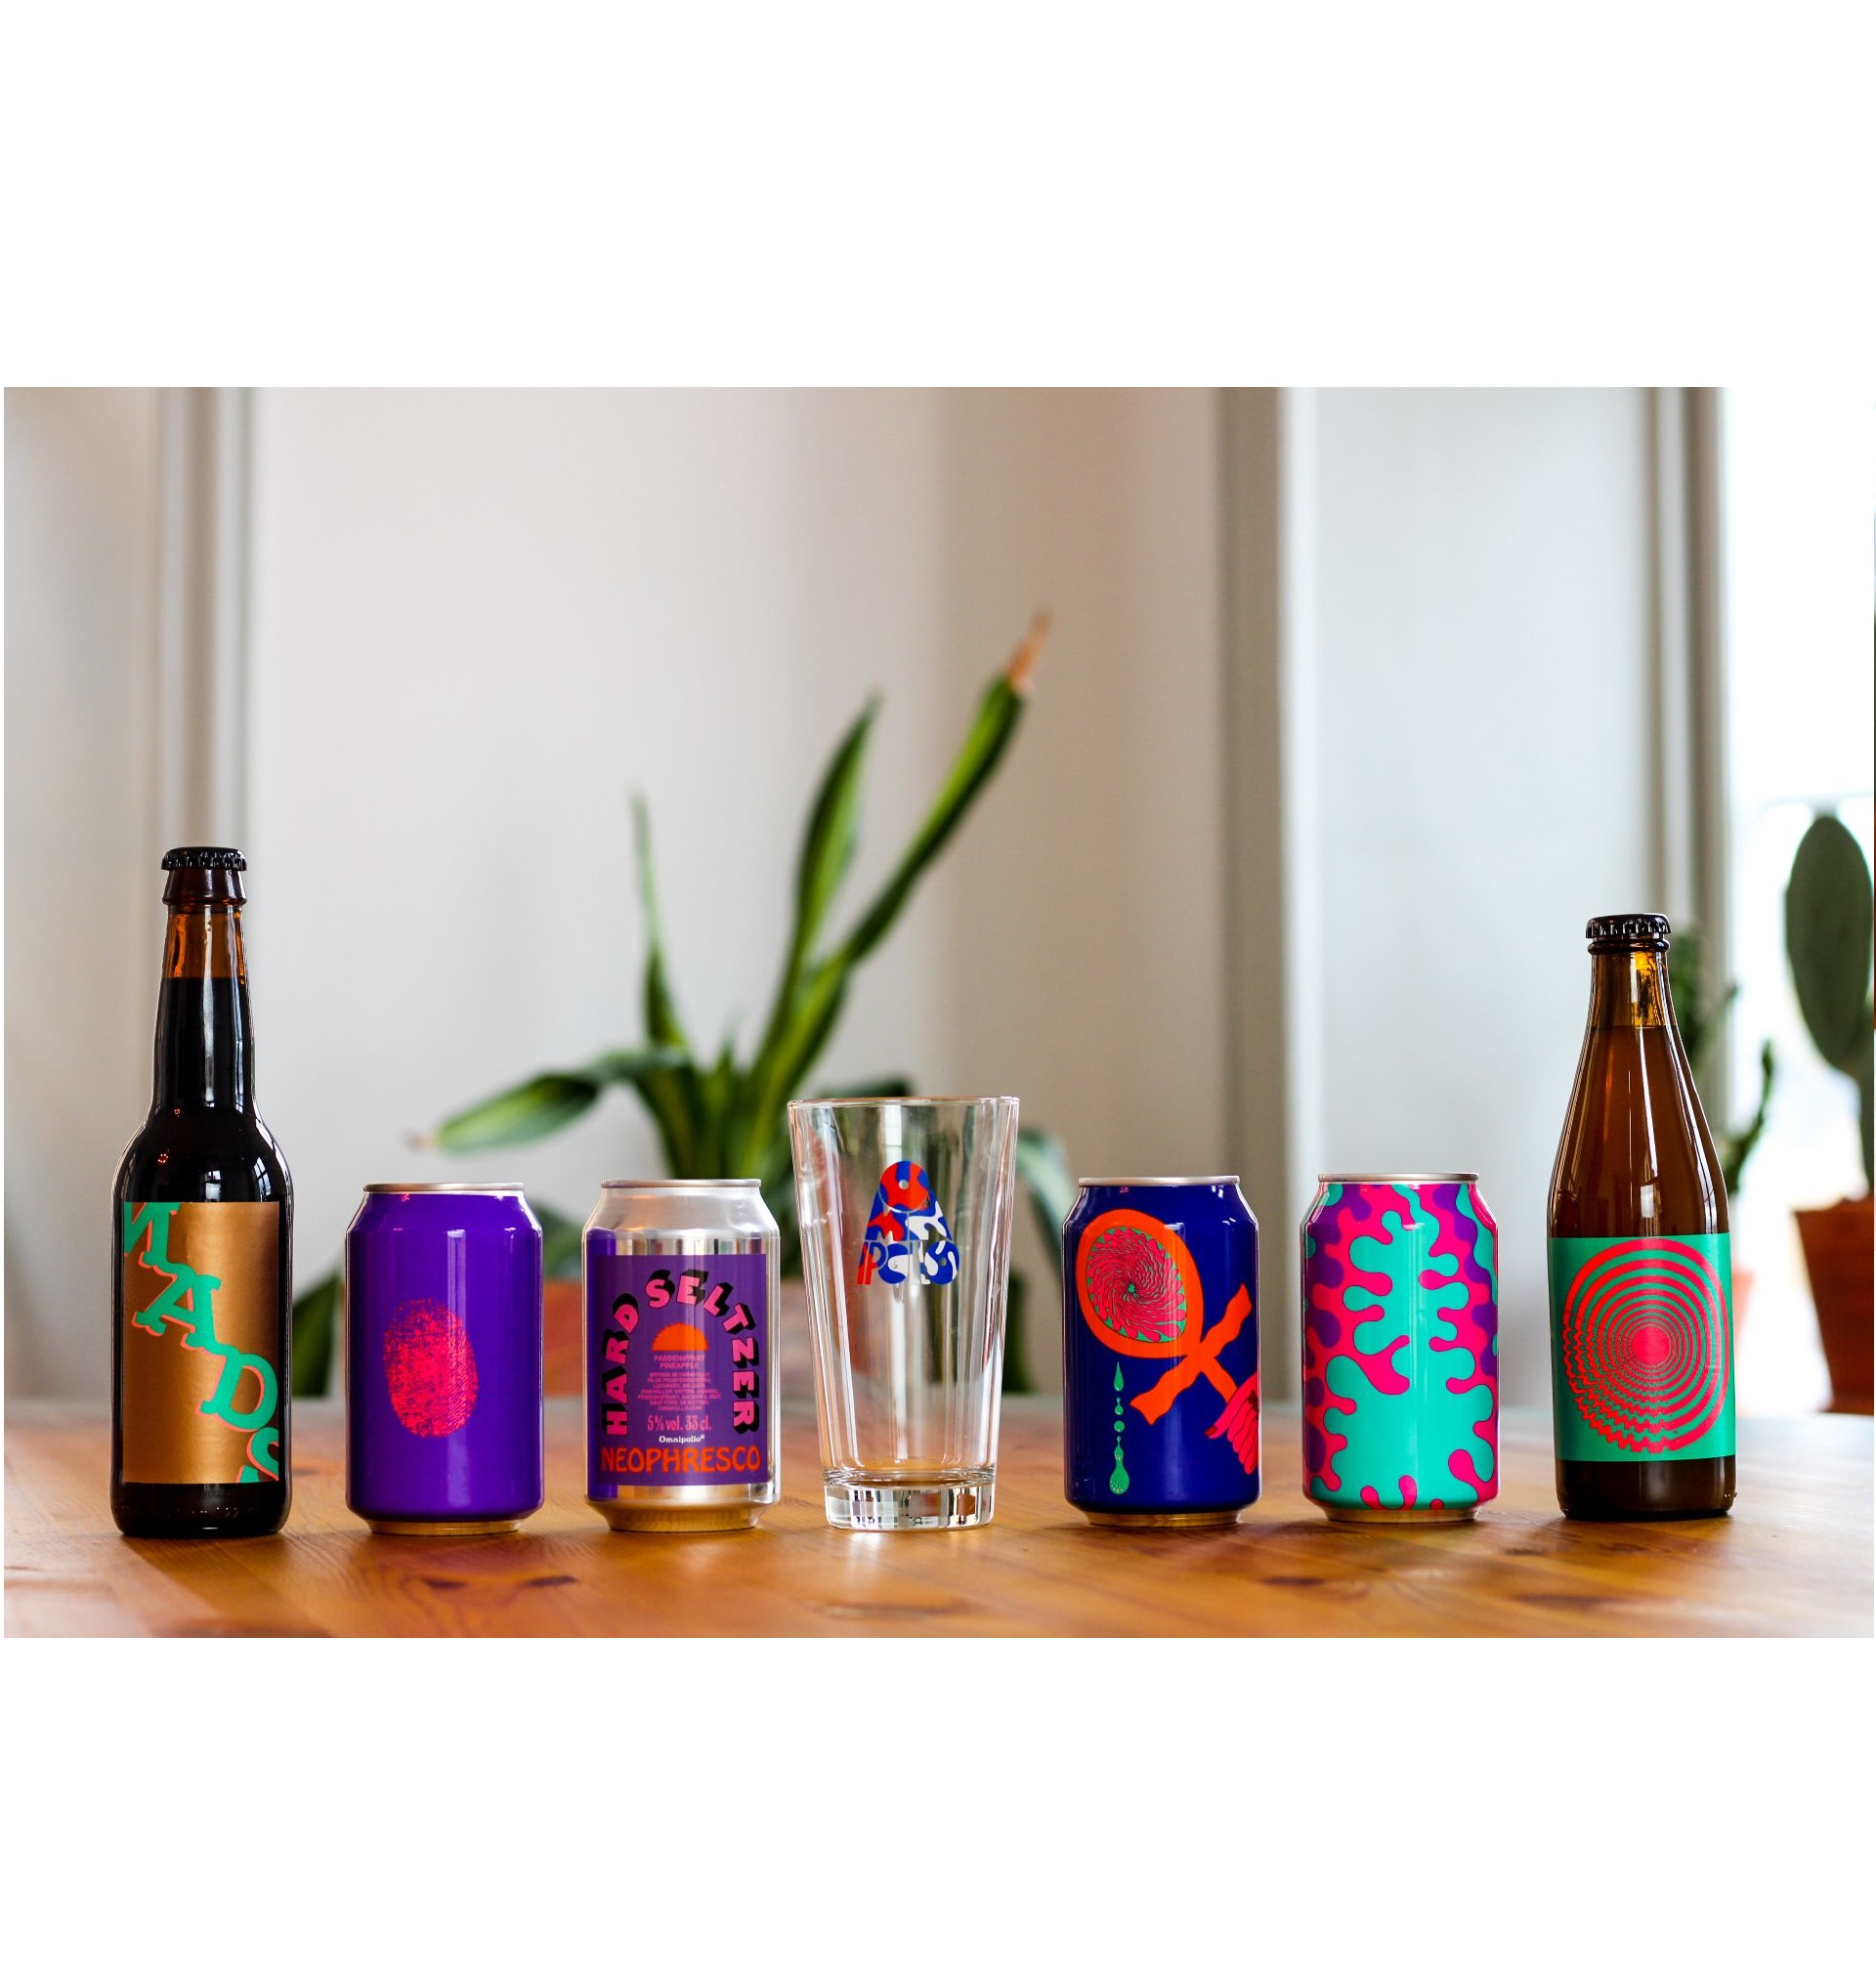 Omnipollo Live from the Church of Omnipollo Tasting Case & Glass